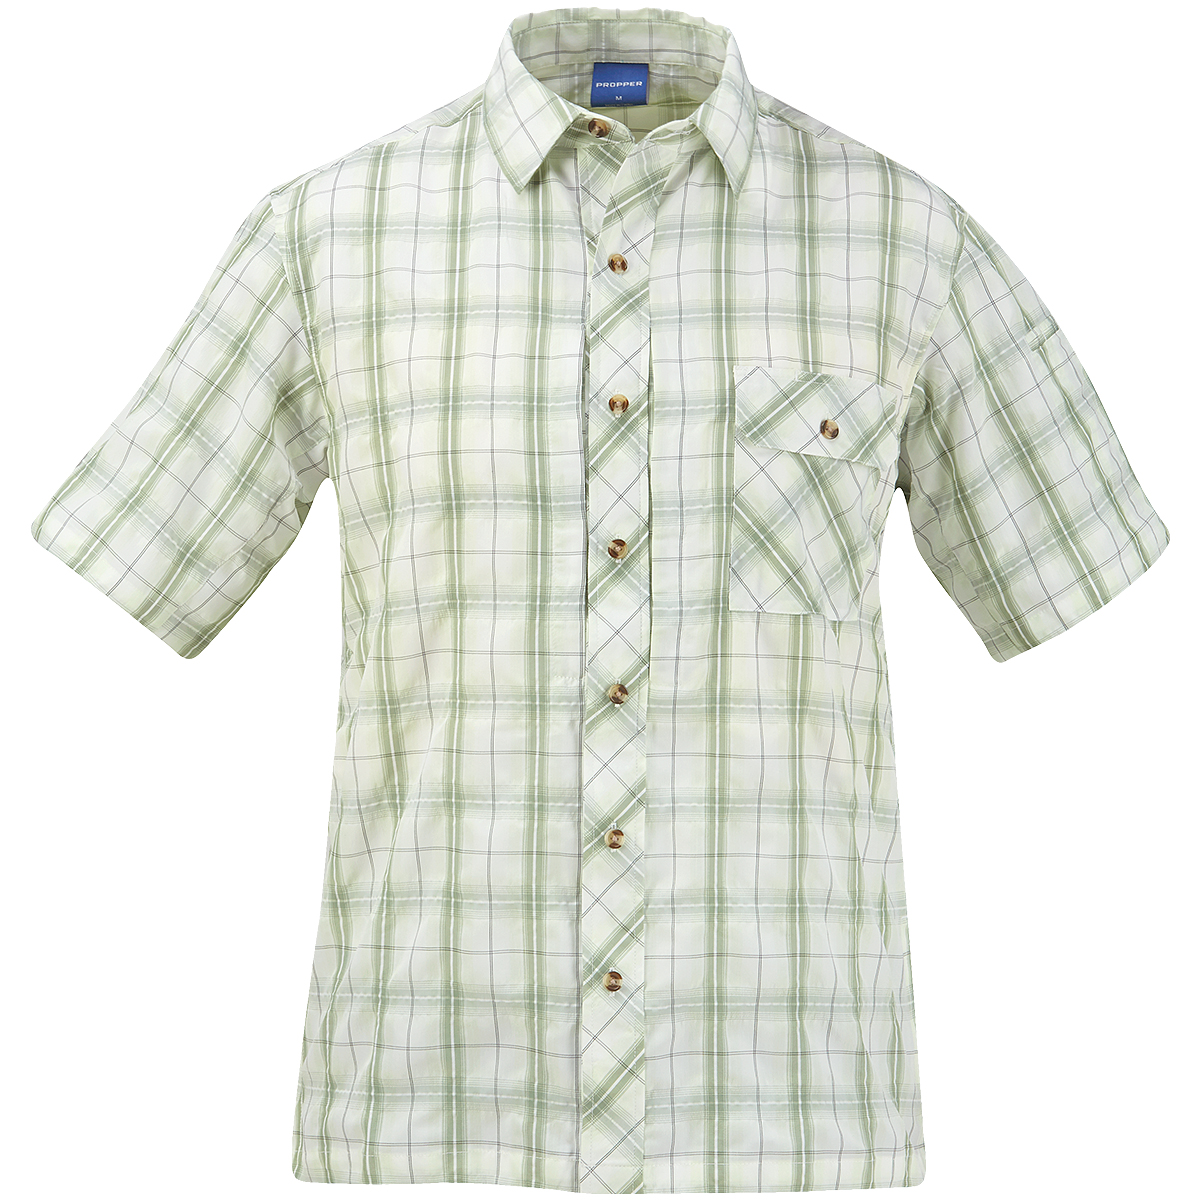 Propper Covert Button-Up Short Sleeve Shirt Tactical Security Mens Sage Plaid